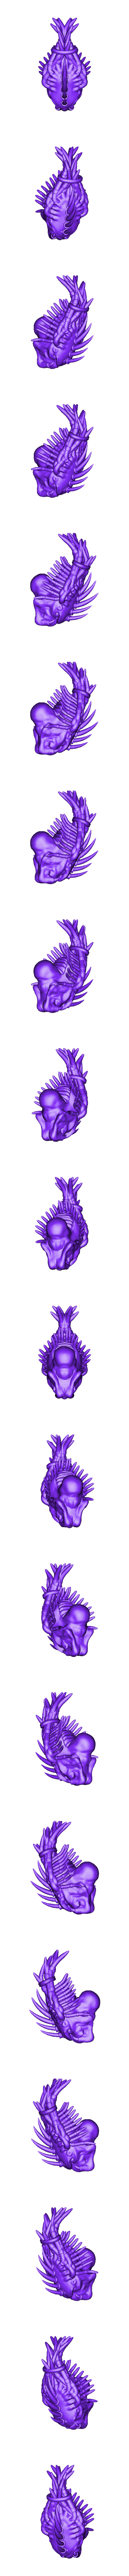 10-UMFc-00101.stl Download free STL file Ugly Mother Flockers -or- Heads for Cannibal Chickens who joined a Cult and love 80's action movies. • 3D printing model, FelixTheCrazy